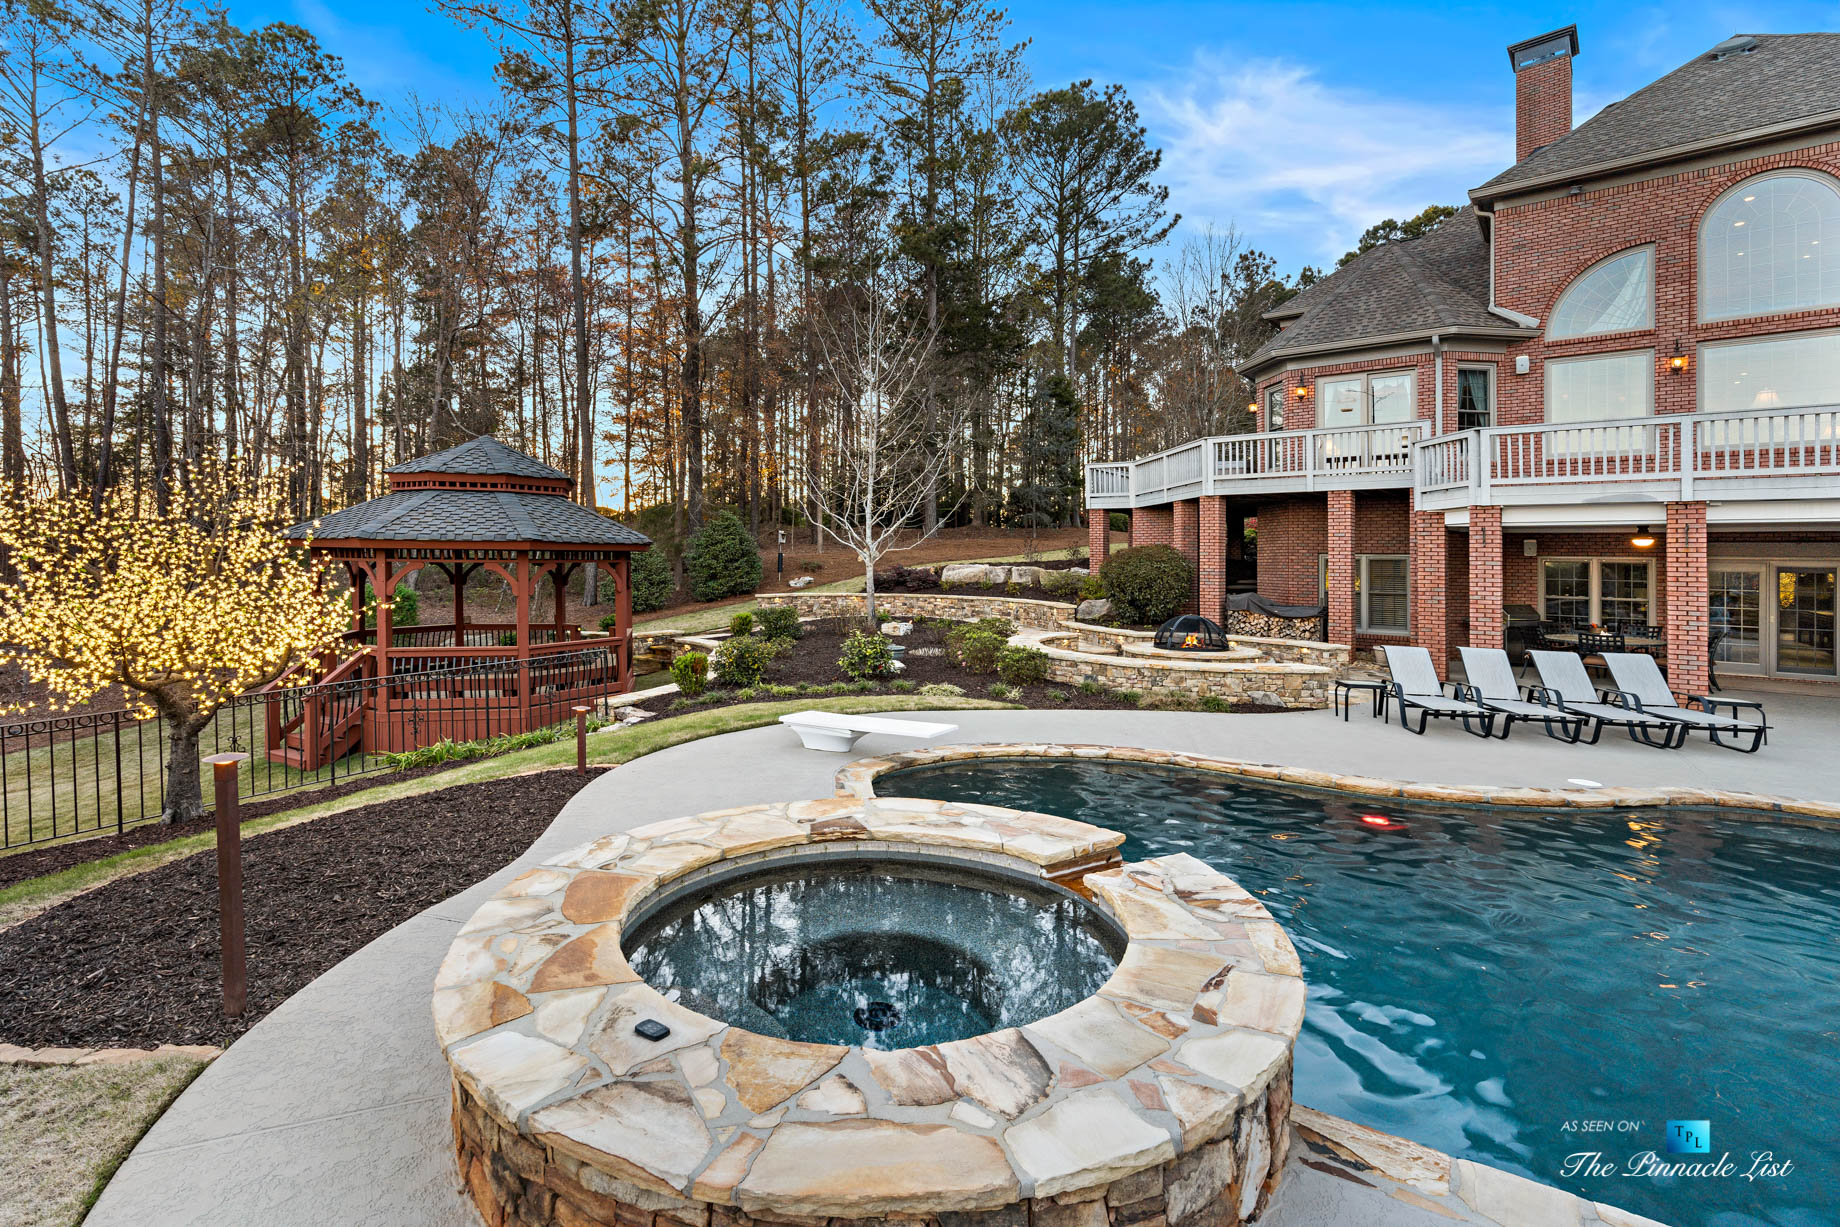 2219 Costley Mill Rd NE, Conyers, GA, USA – Backyard Hot Tub and Pool – Luxury Real Estate – Equestrian Country Home